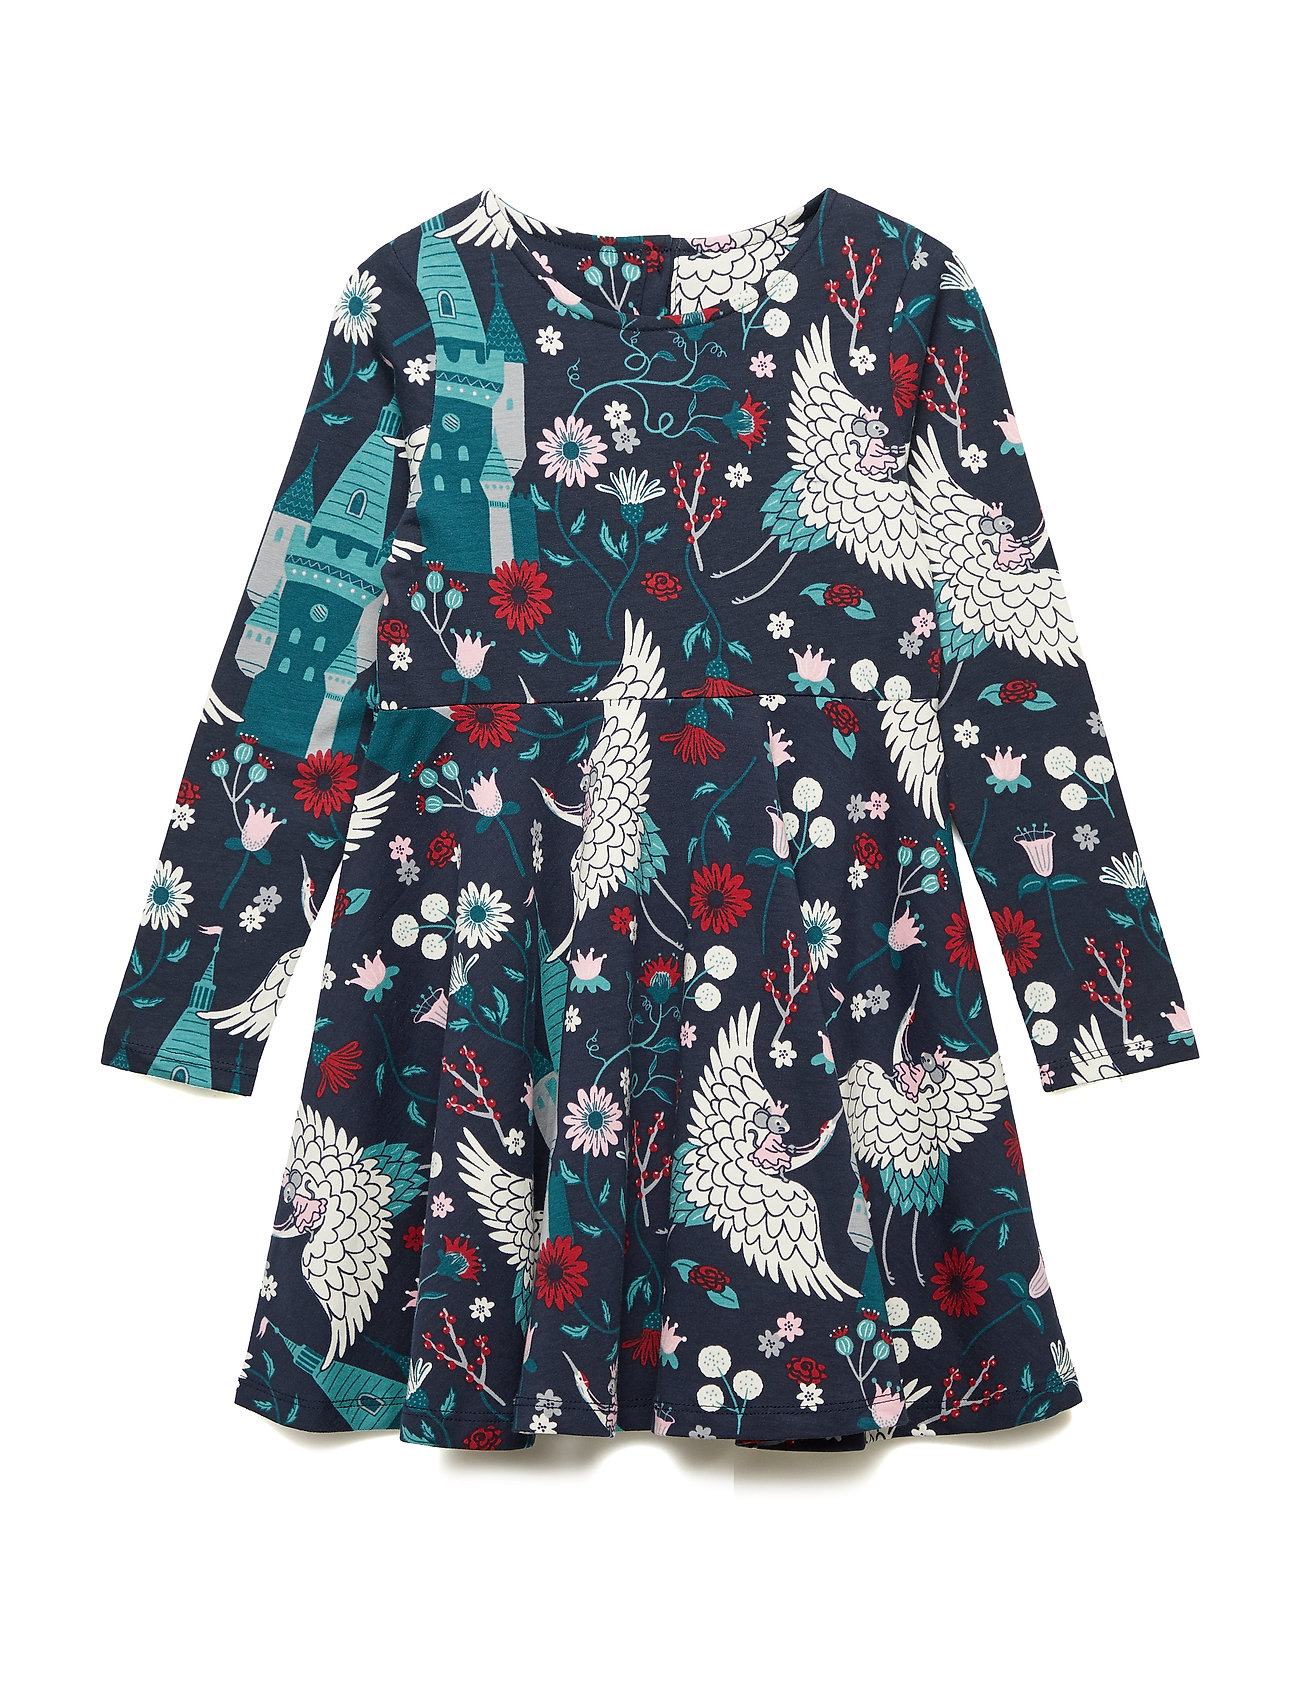 Polarn O. Pyret Dress Long Sleeve Preschool